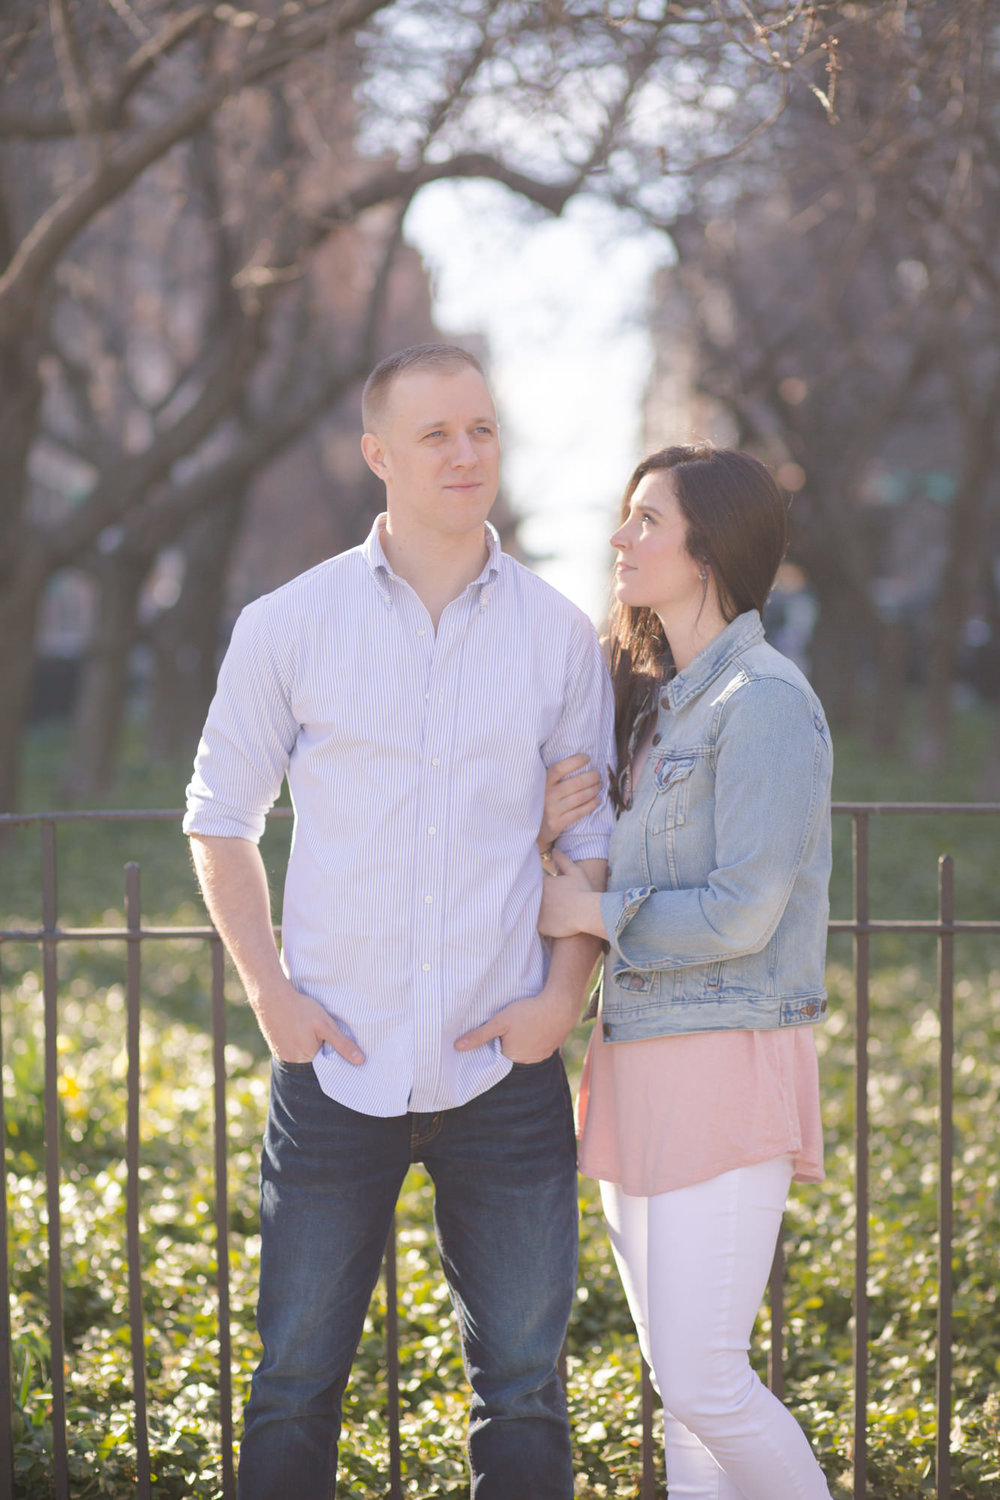 Alex & Alec - New York City engagement session